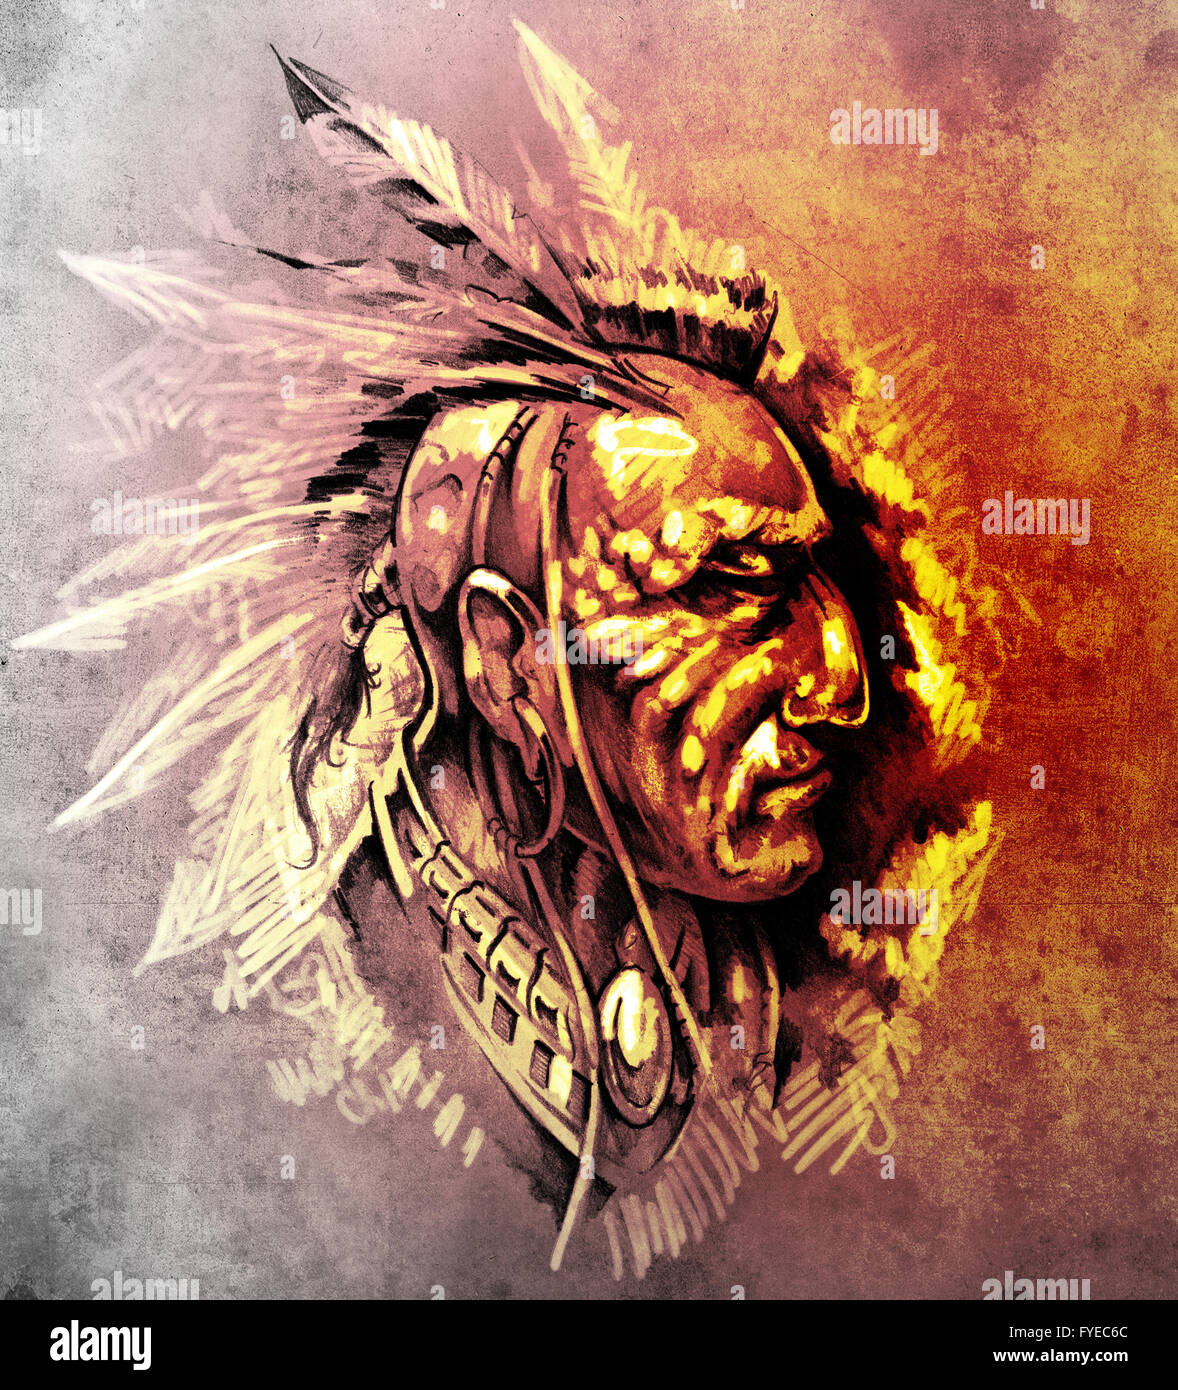 Sketch of tattoo art, American Indian Chief illustration over colorful paper - Stock Image